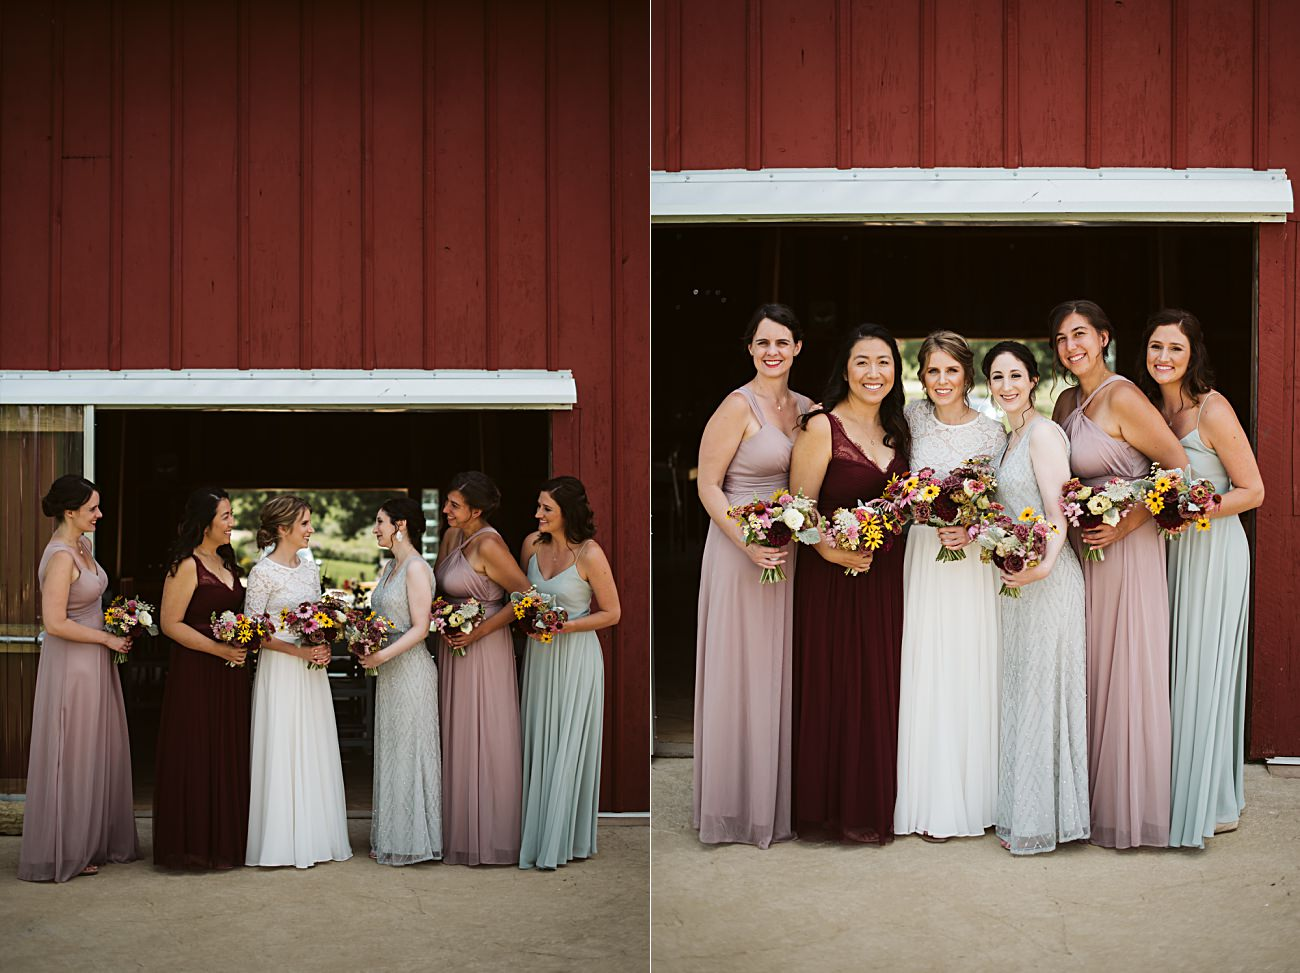 Wisconsin Barn Wedding, Madison Wisconsin Wedding Photographer, Wedding Party Photos